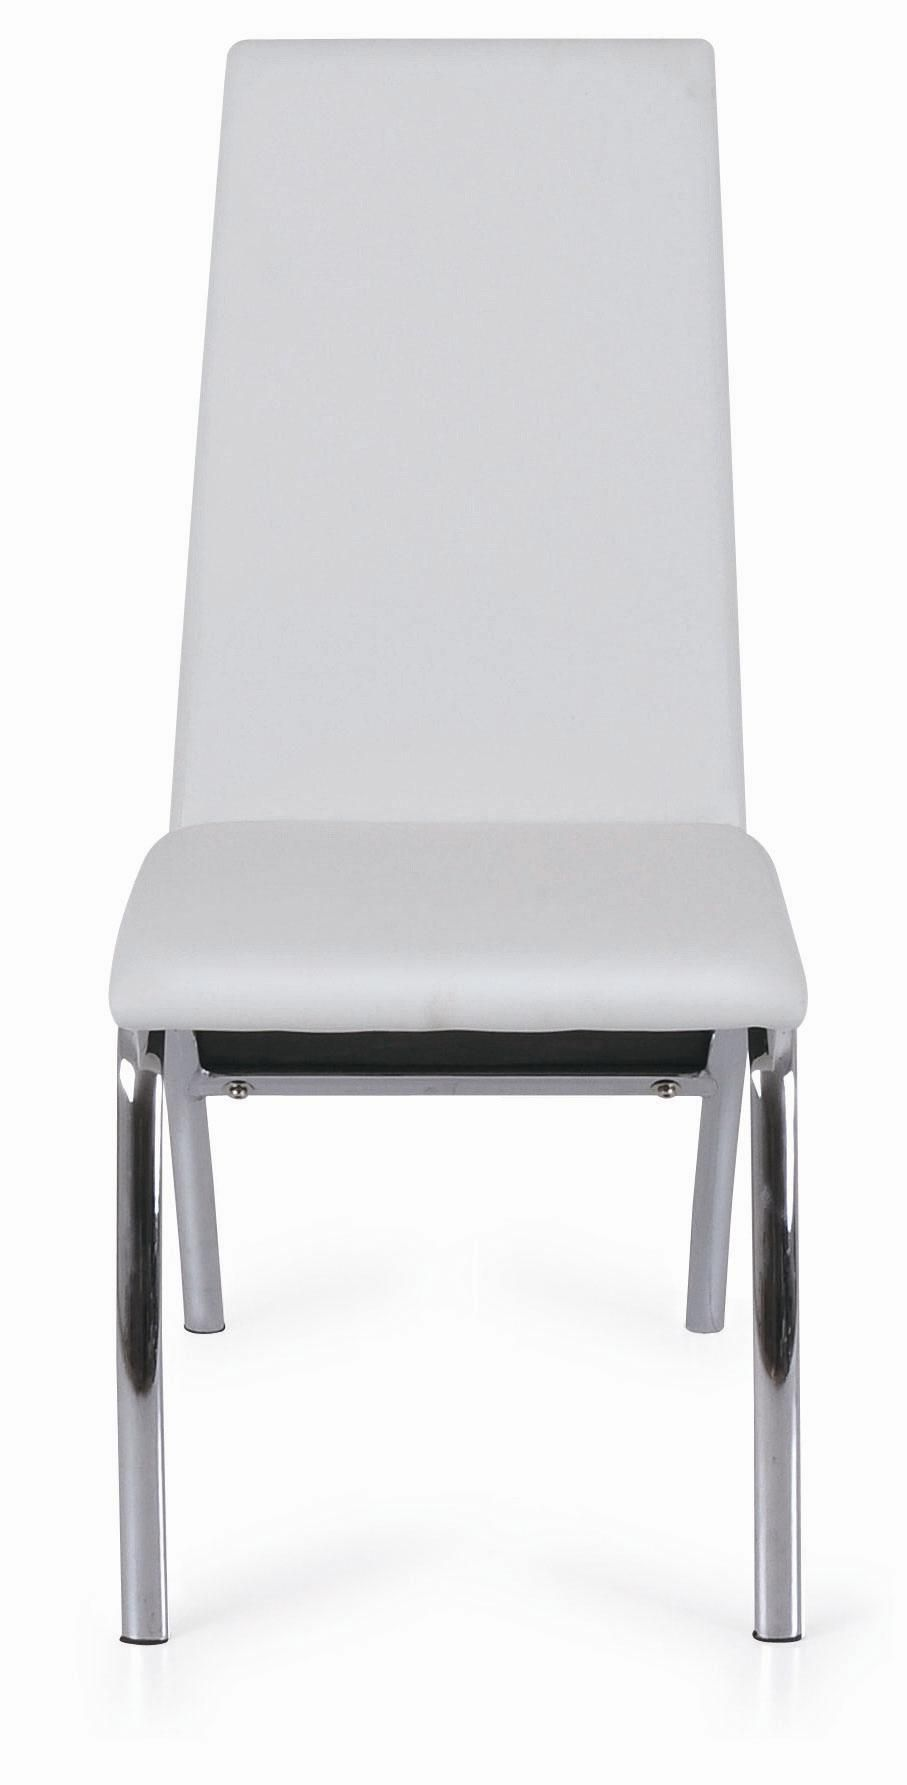 CA Fire Retardant Form, Chrome Legs And PU Covered Seat.